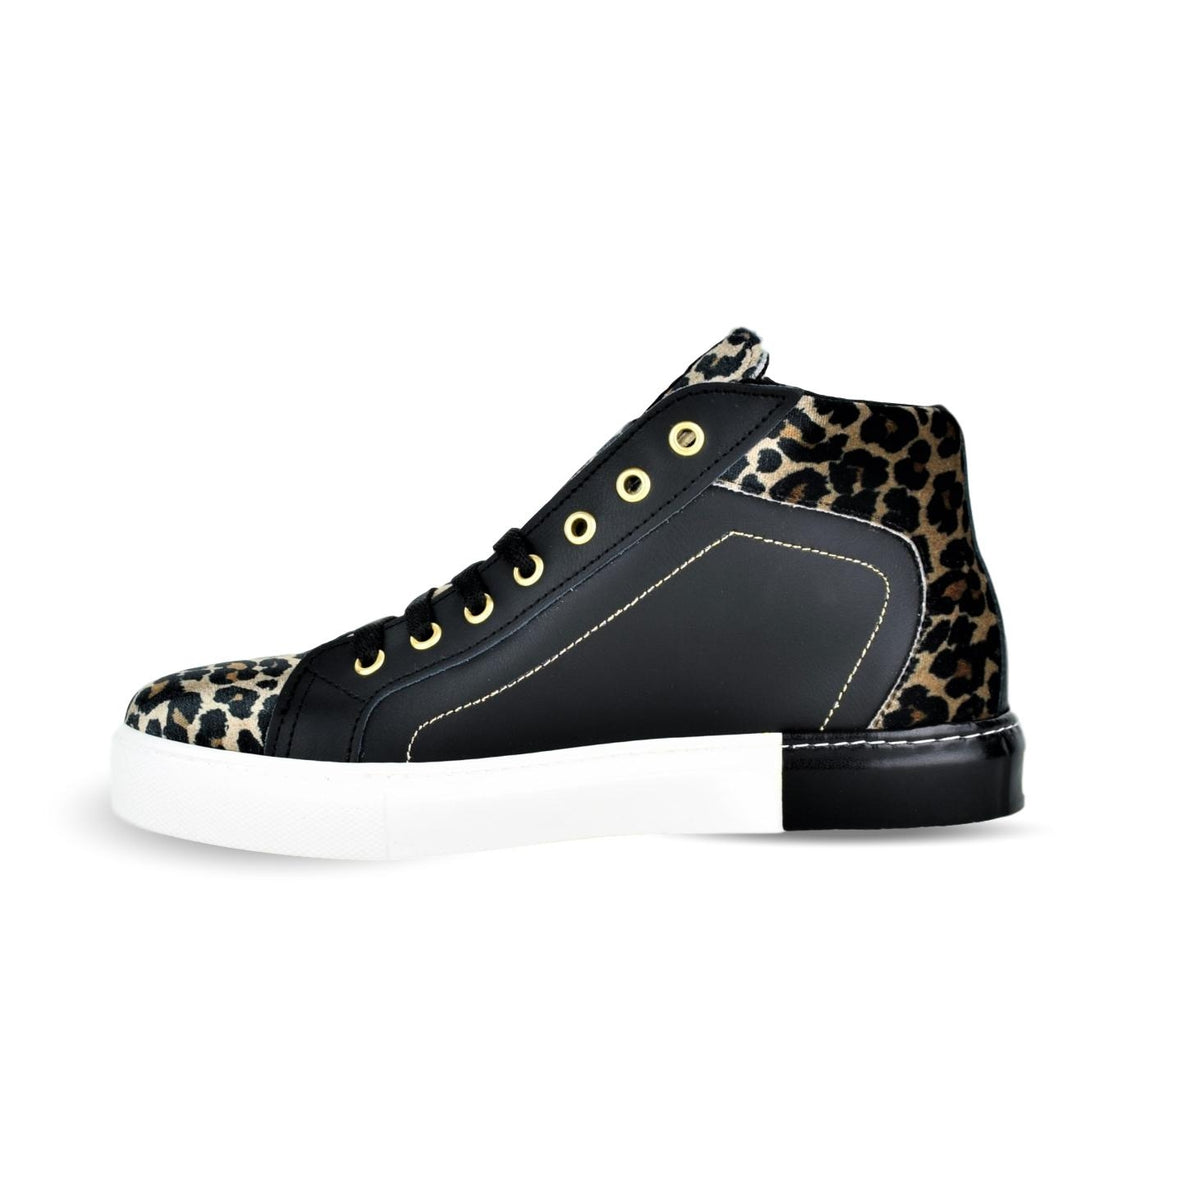 TERINO - NU2 Lace Up Ankle Boots Black Leopard